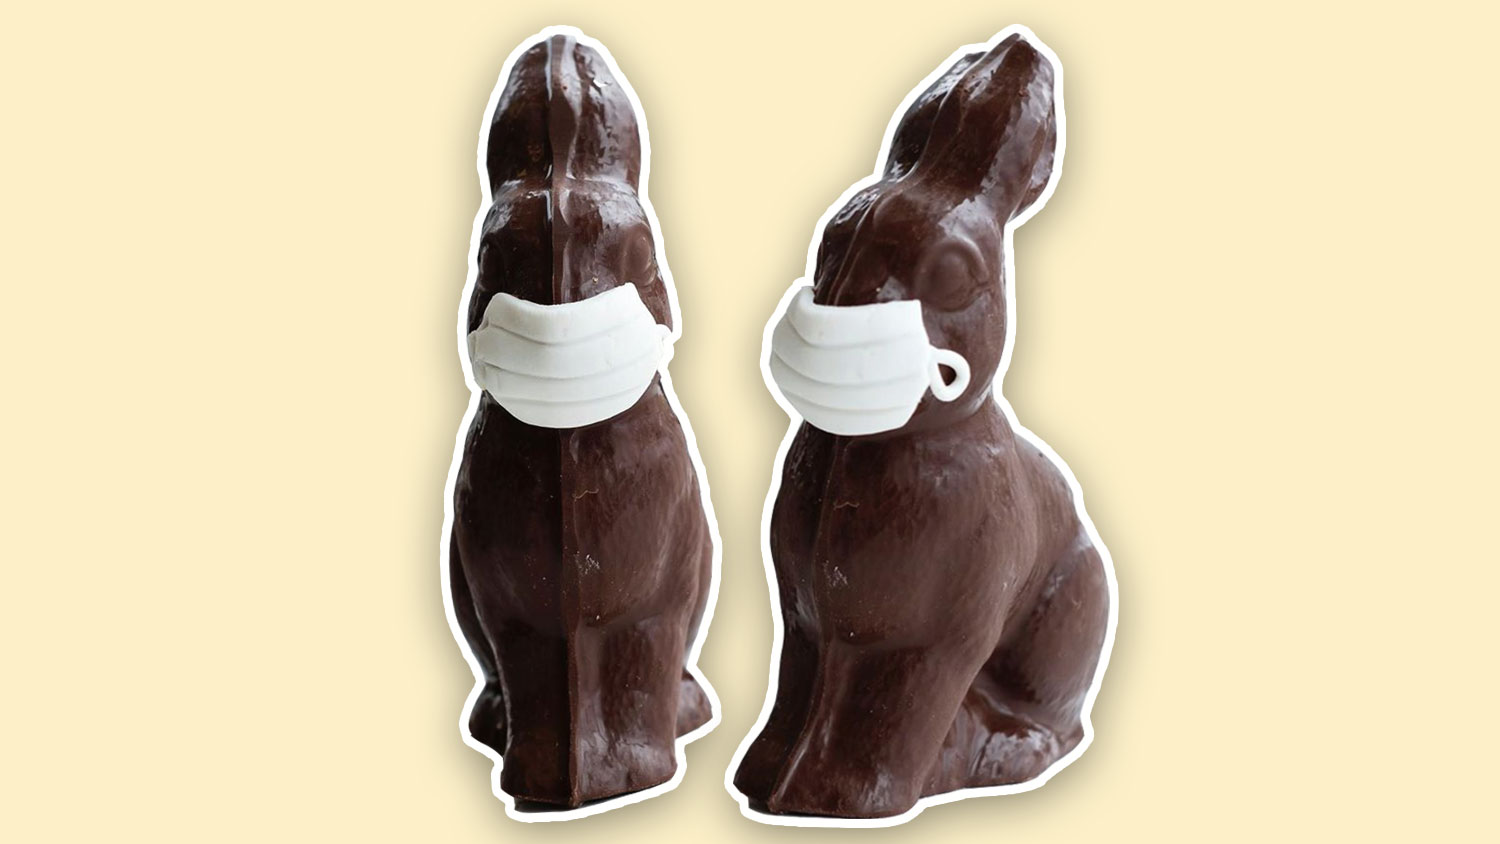 You Can Get COVID-Friendly Vegan Chocolate Easter Bunnies